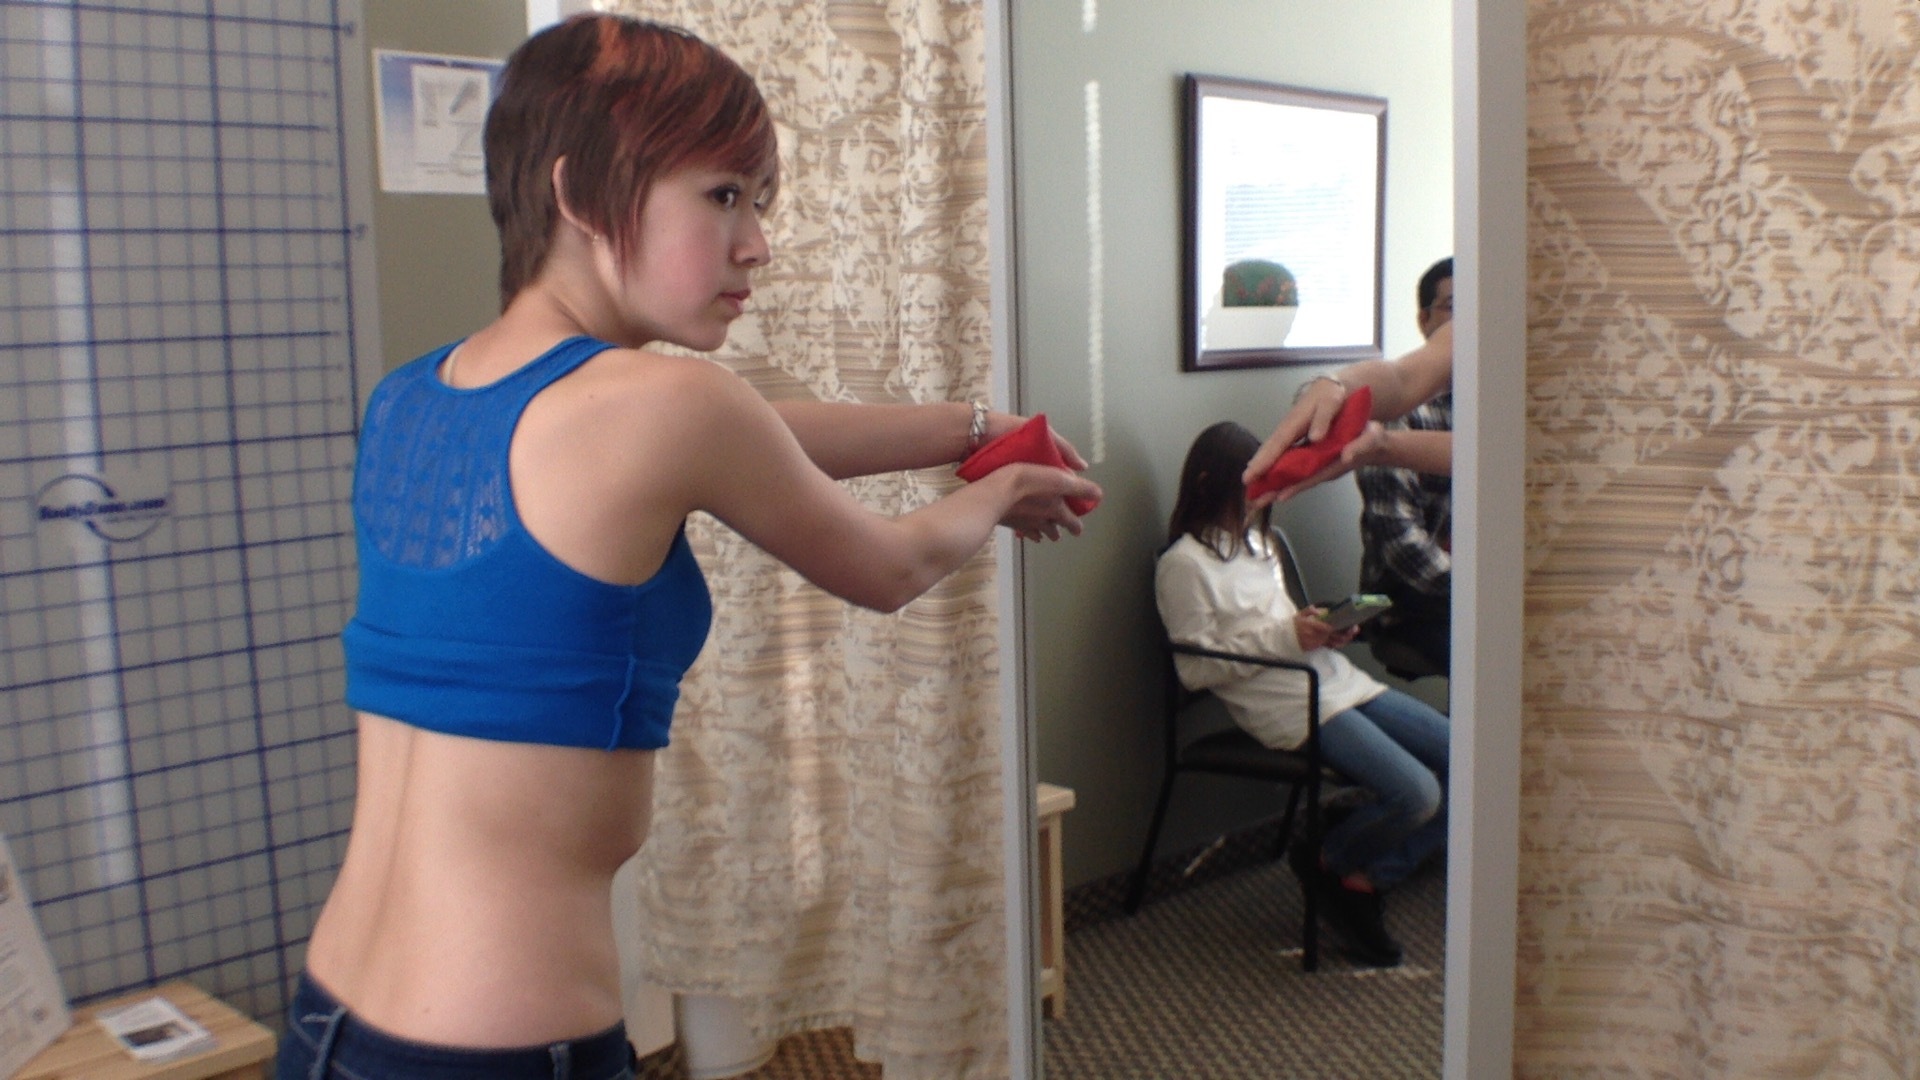 13 Year Old Curvy Girl Launches Scoliosis Support Group Stgnews Videocast St George News